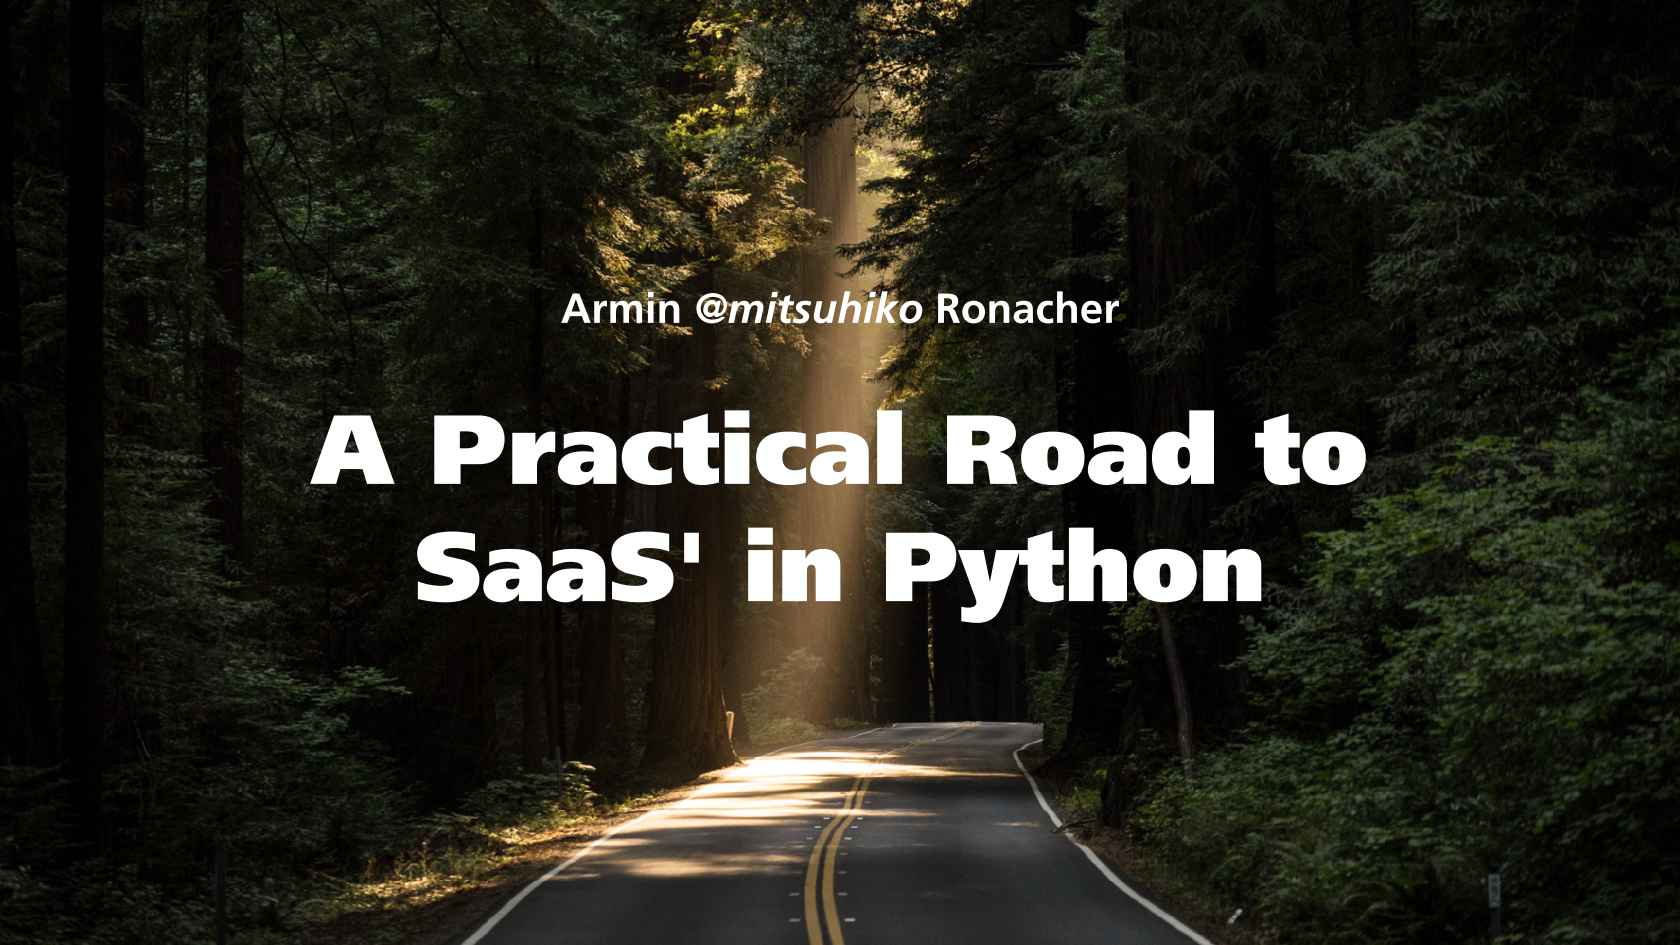 A Practical Road to SaaS in Python